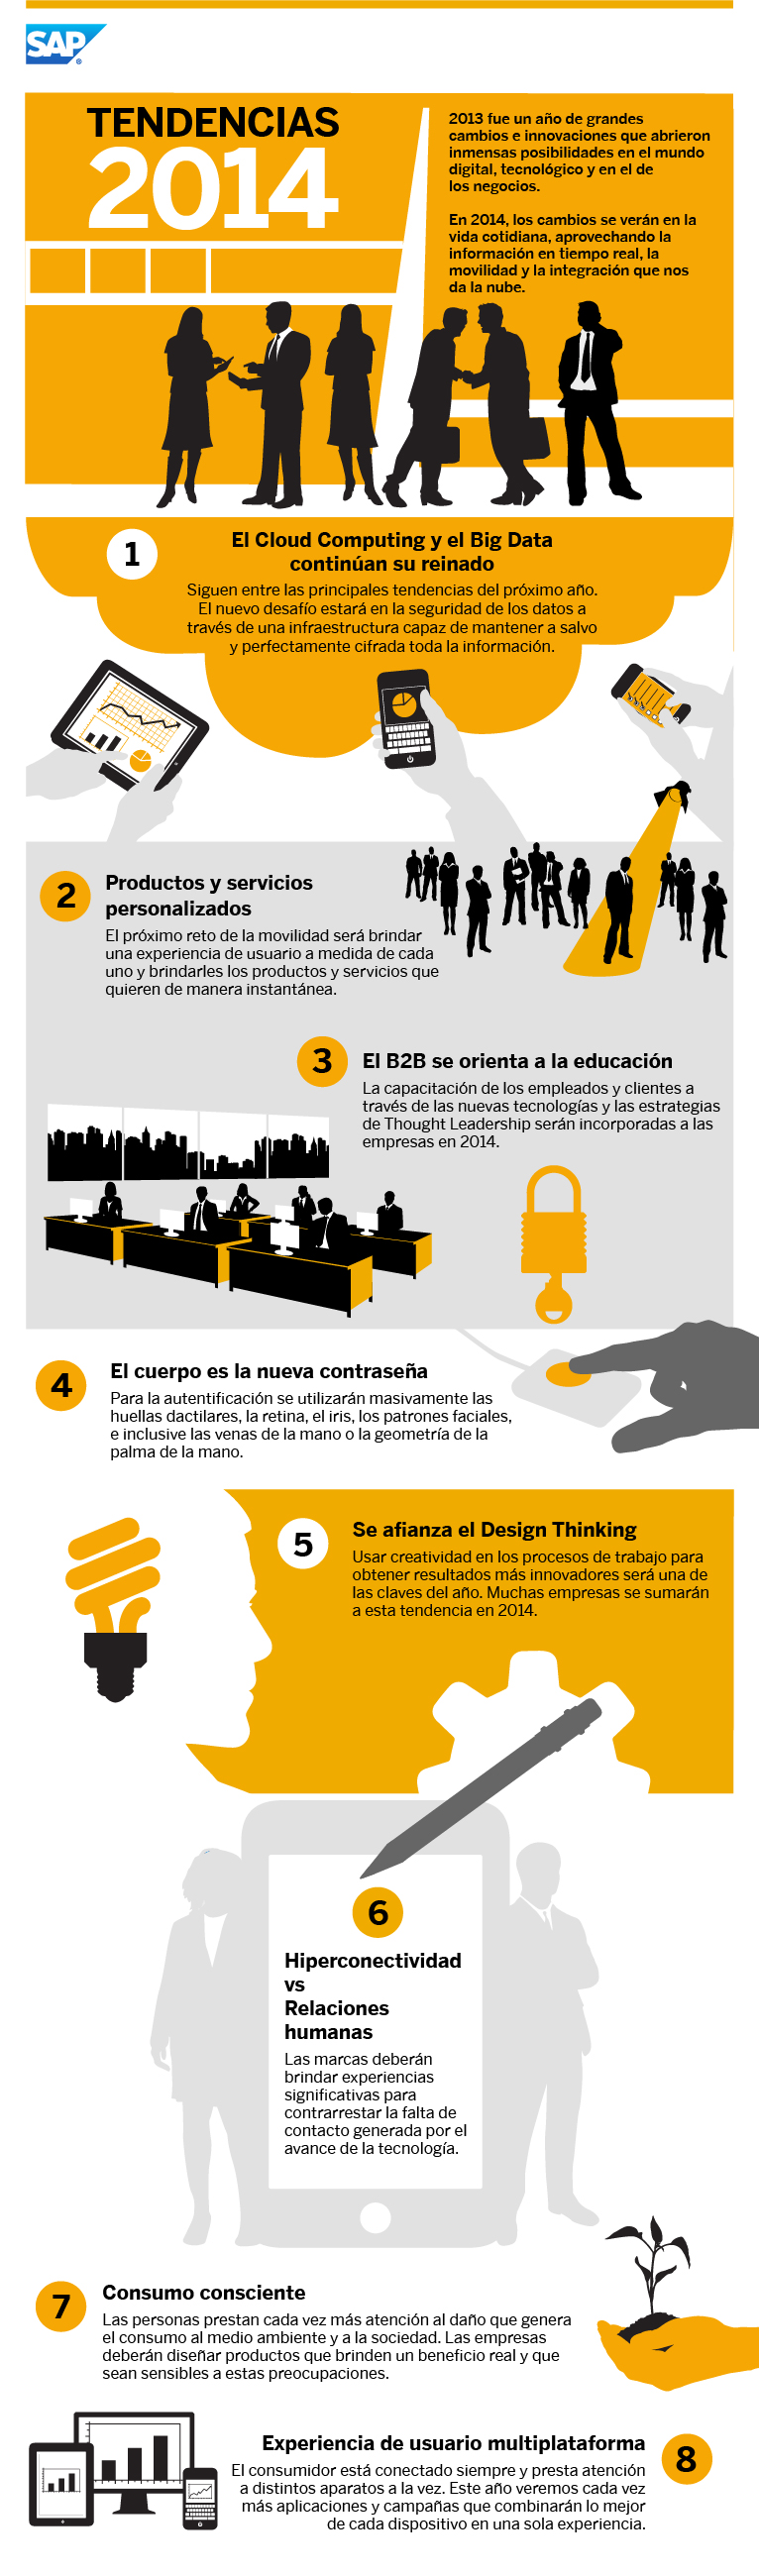 Tendencias digitales para 2014